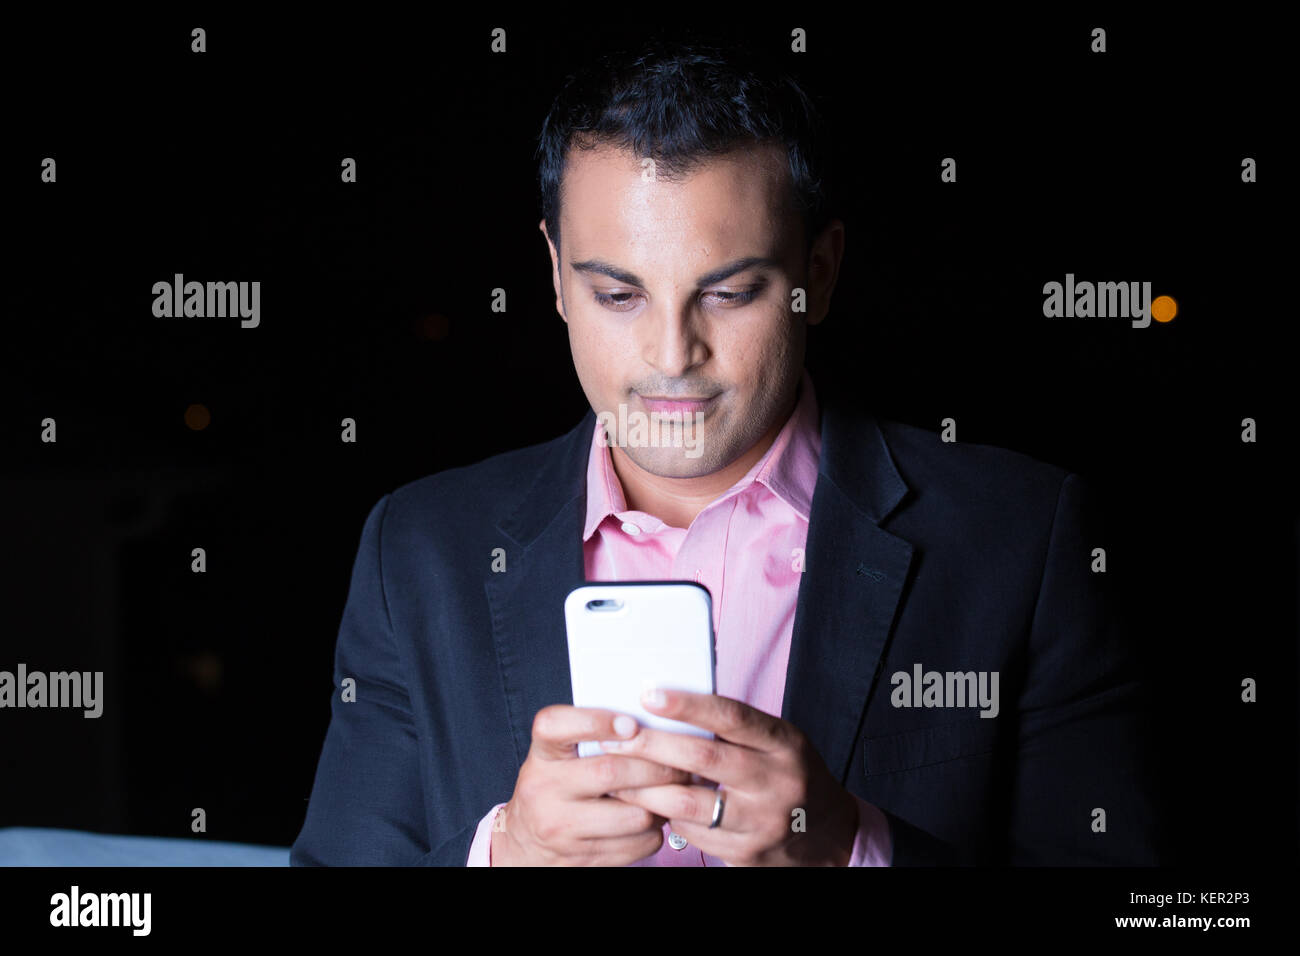 Closeup portrait, young man in black blazer, pink shirt using cell phone, texting at night, isolated outdoors black - Stock Image